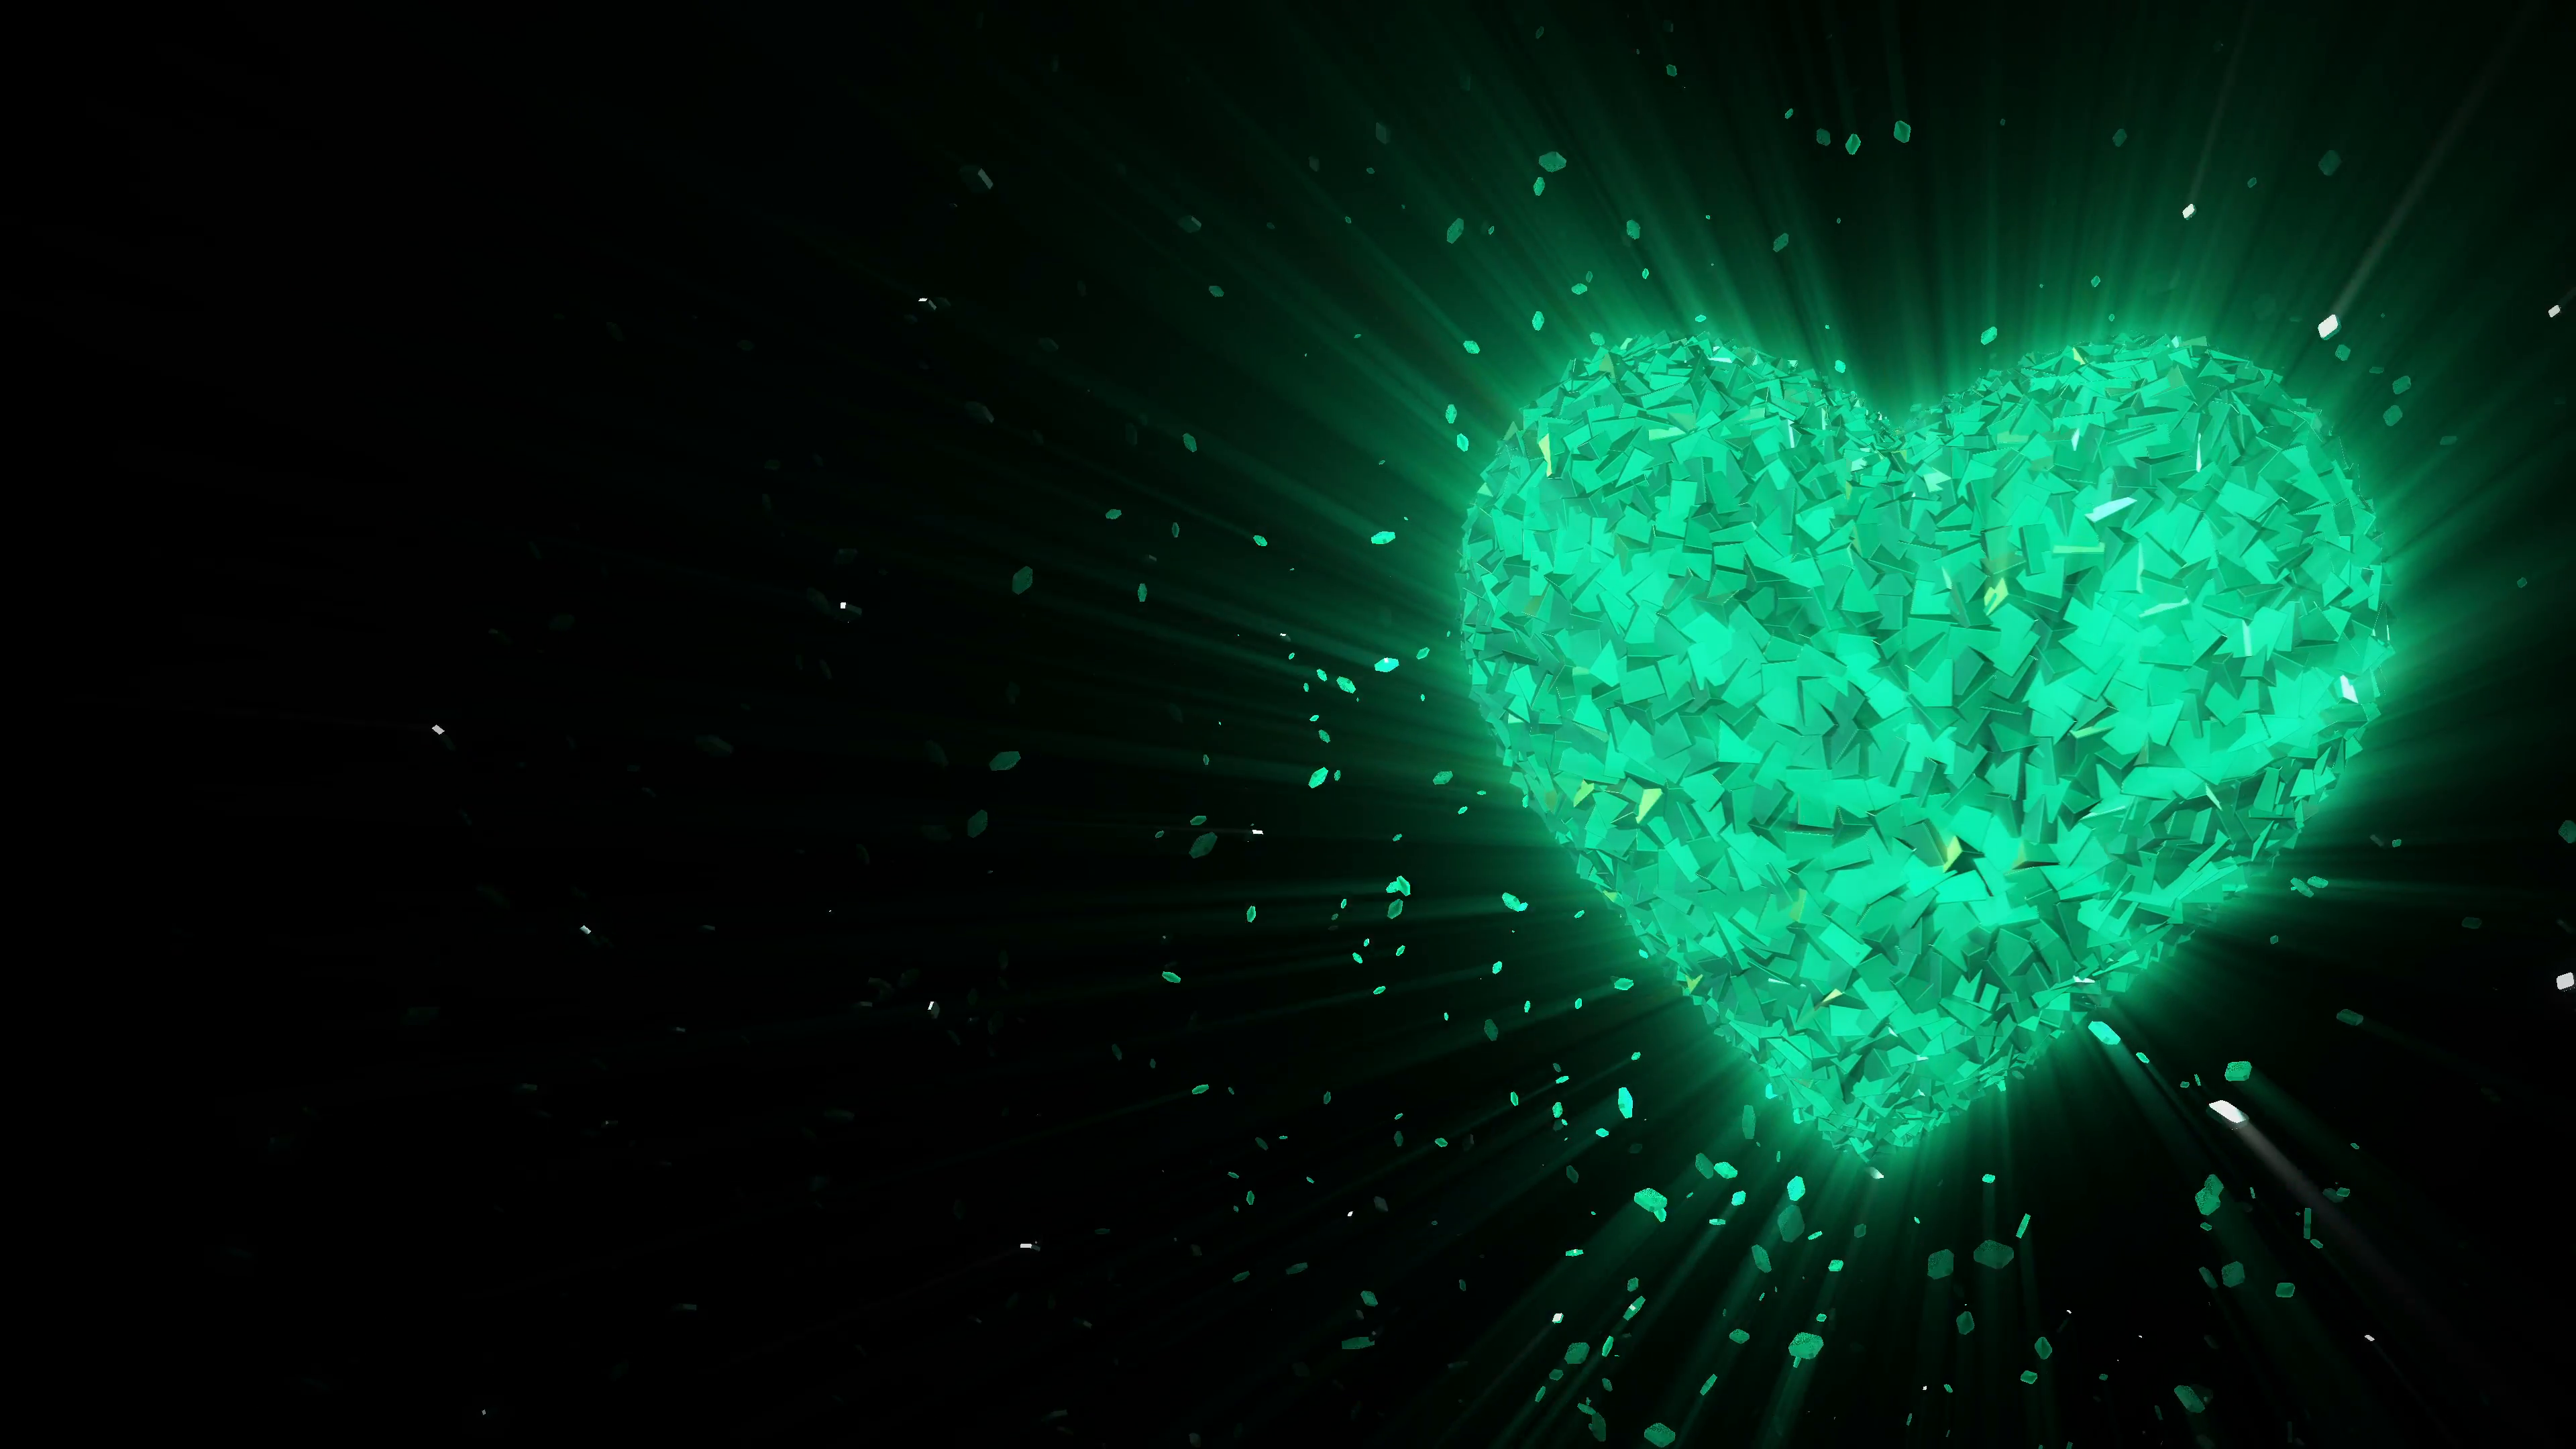 Emerald Green Background 110 images in Collection Page 2 3840x2160